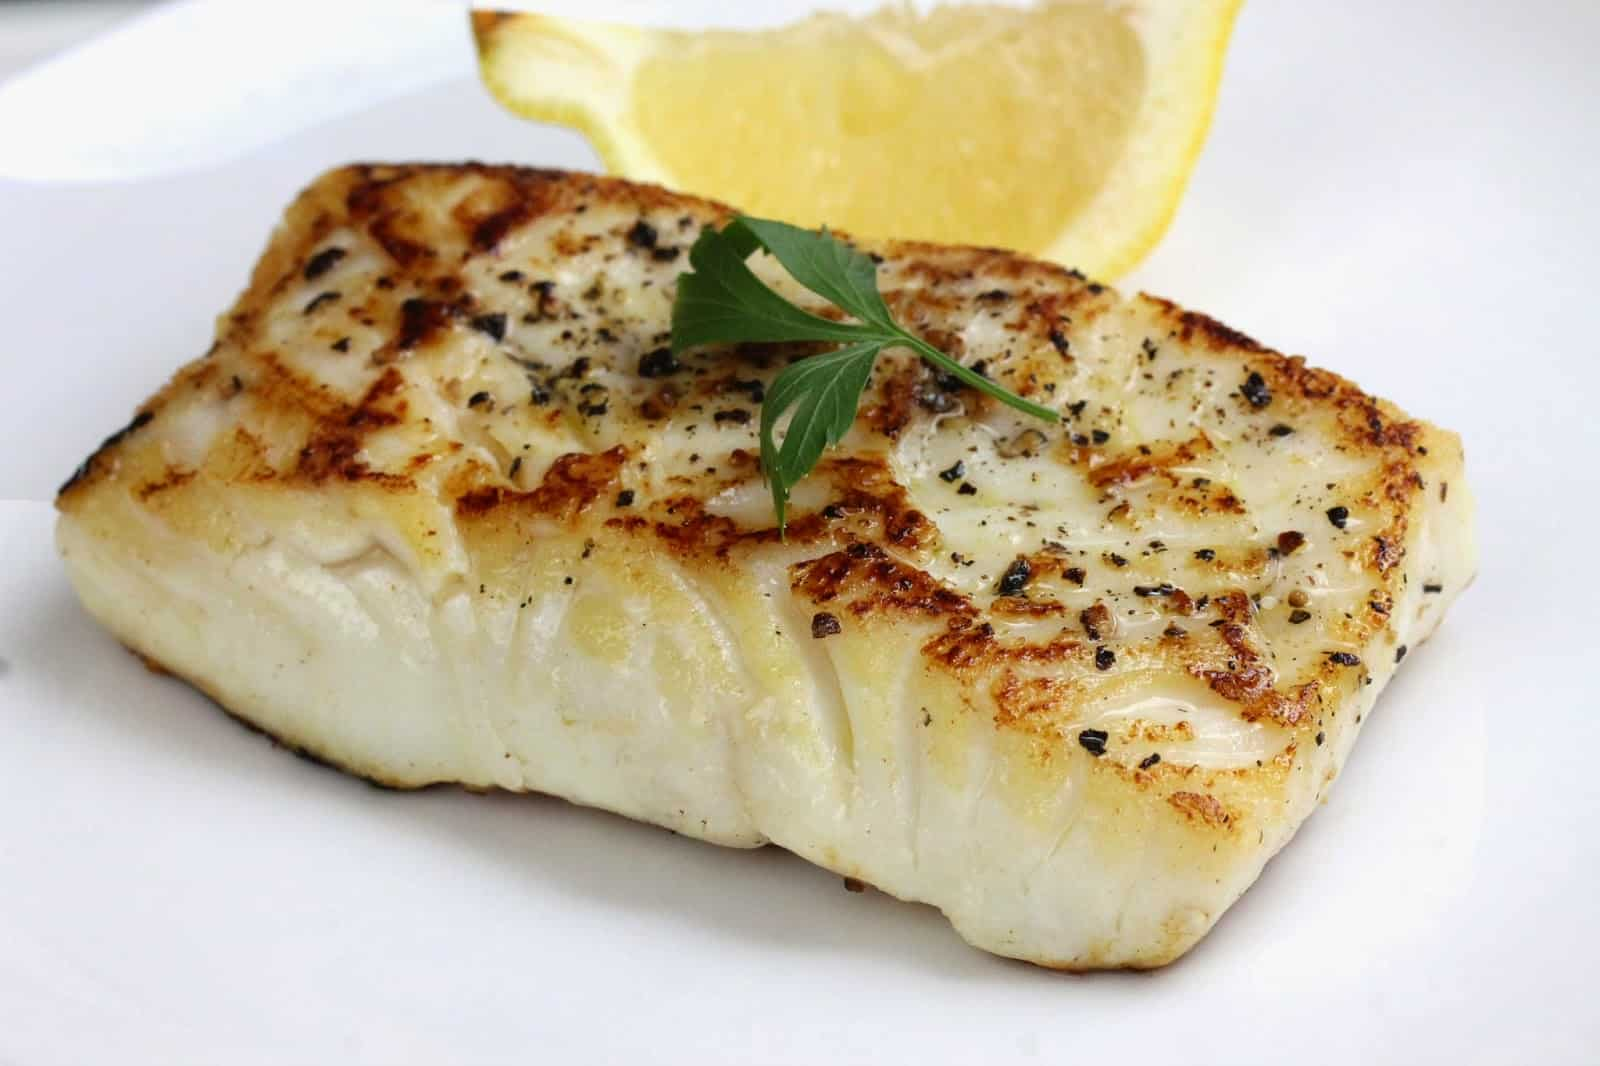 A pan seared fish filet, seasoned and ready to eat. Garnished with a parsley sprig and a lemon wedge.